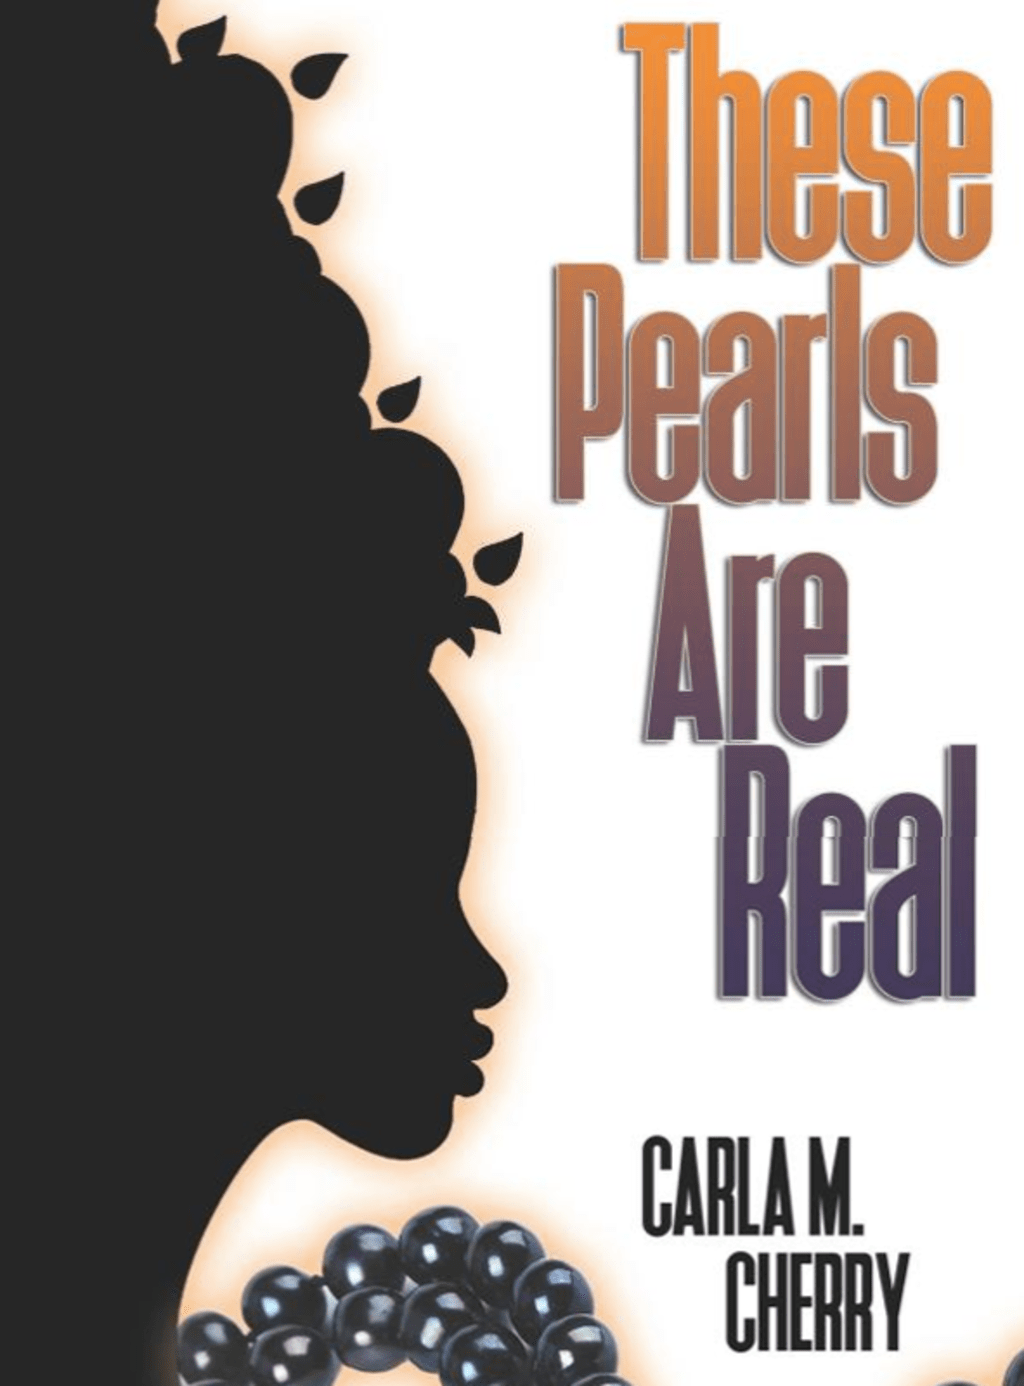 Carla M. Cherry's Poems Are Pearls